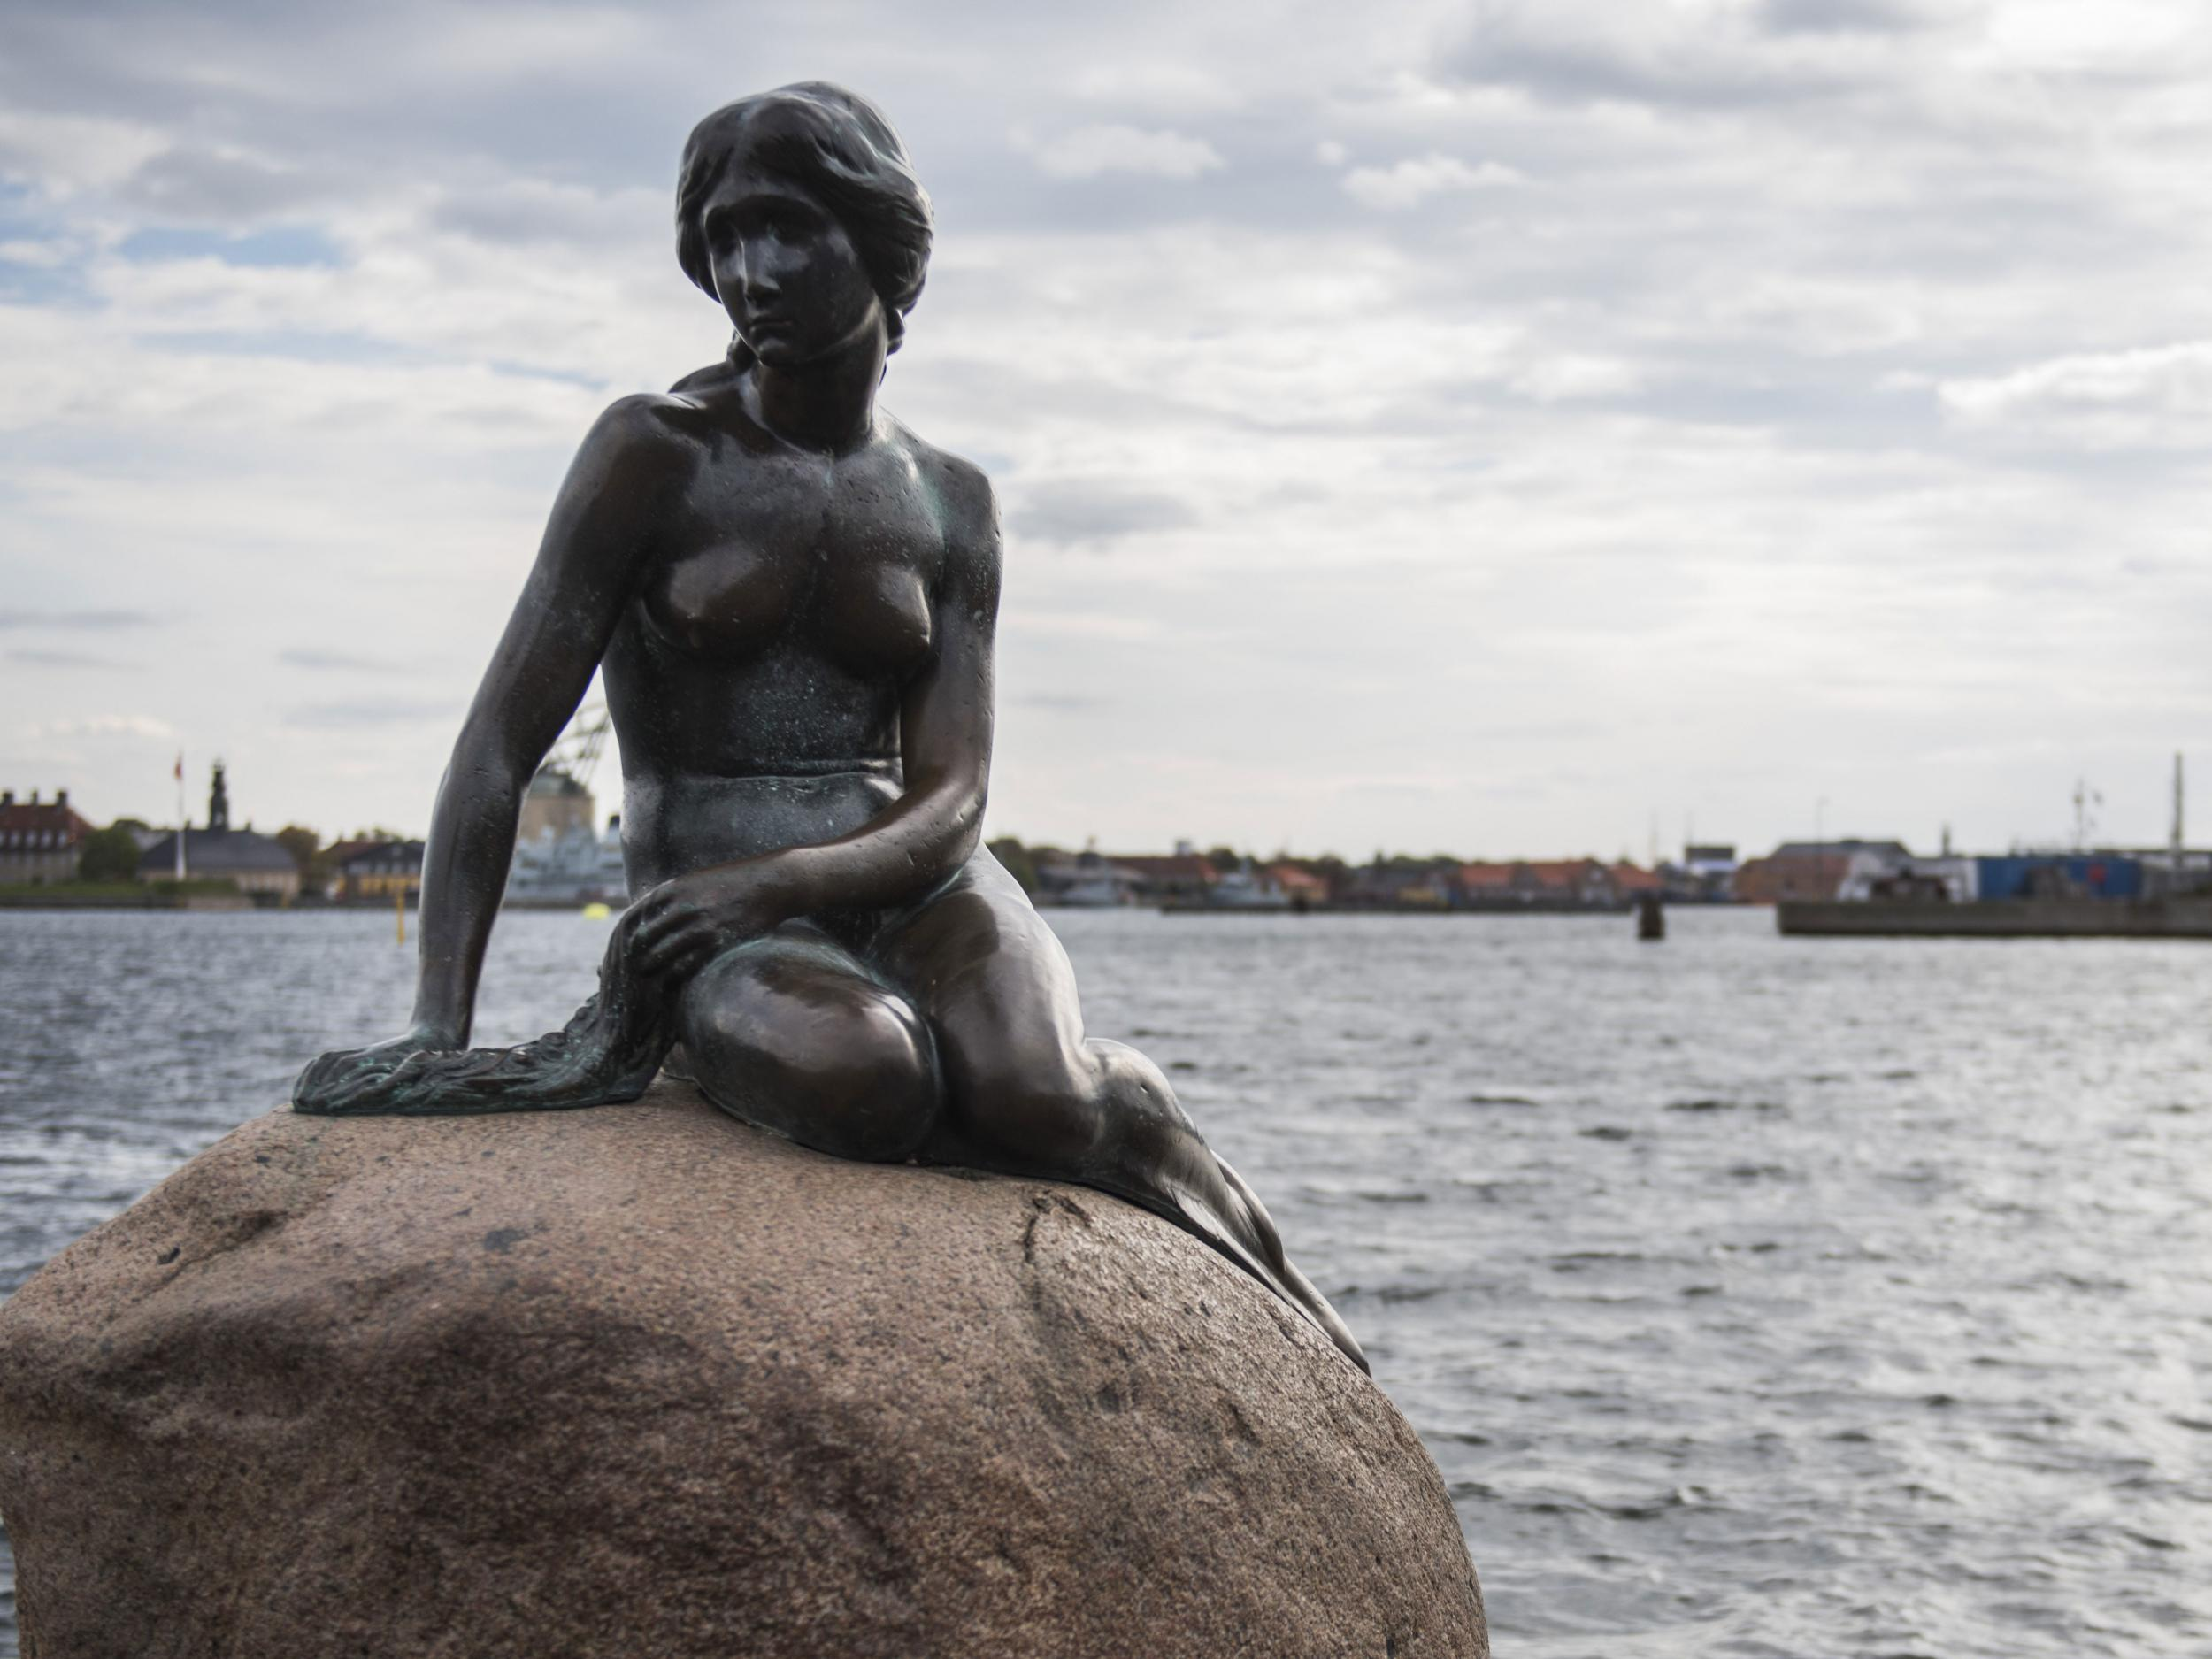 The Little Mermaid guards the port to Nyhavn. One of the most visited attractions in Copenhagen. A must on our walking tour.